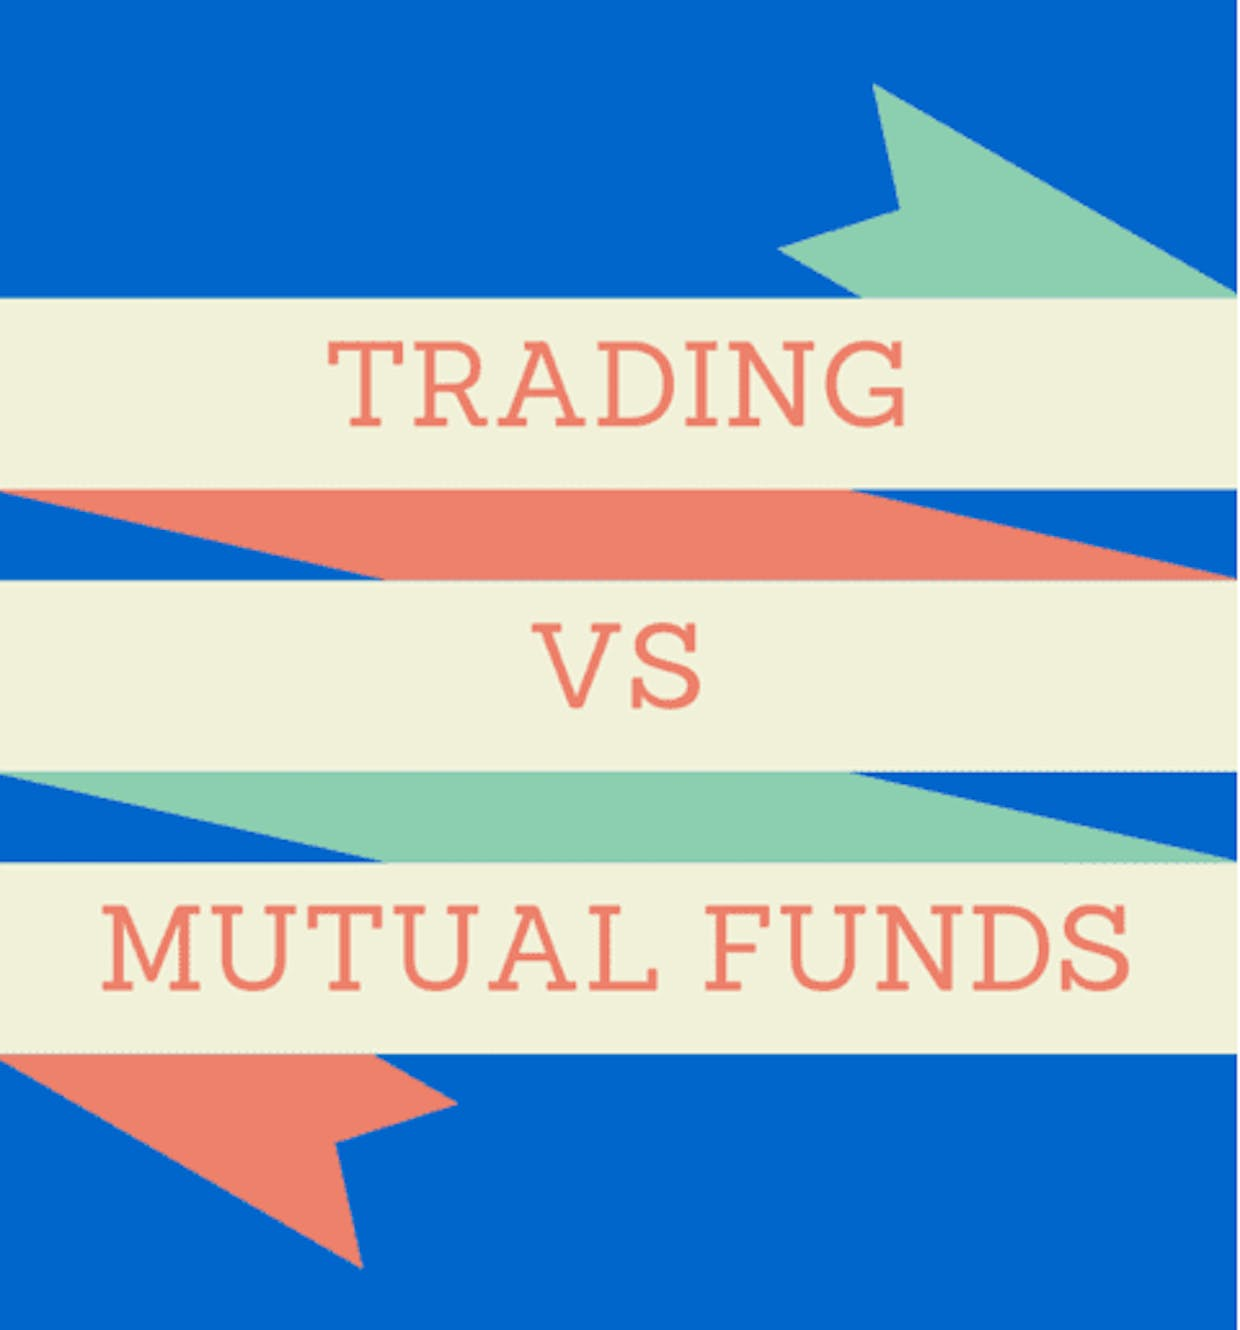 Is Trading Better Than Mutual Fund Investing?